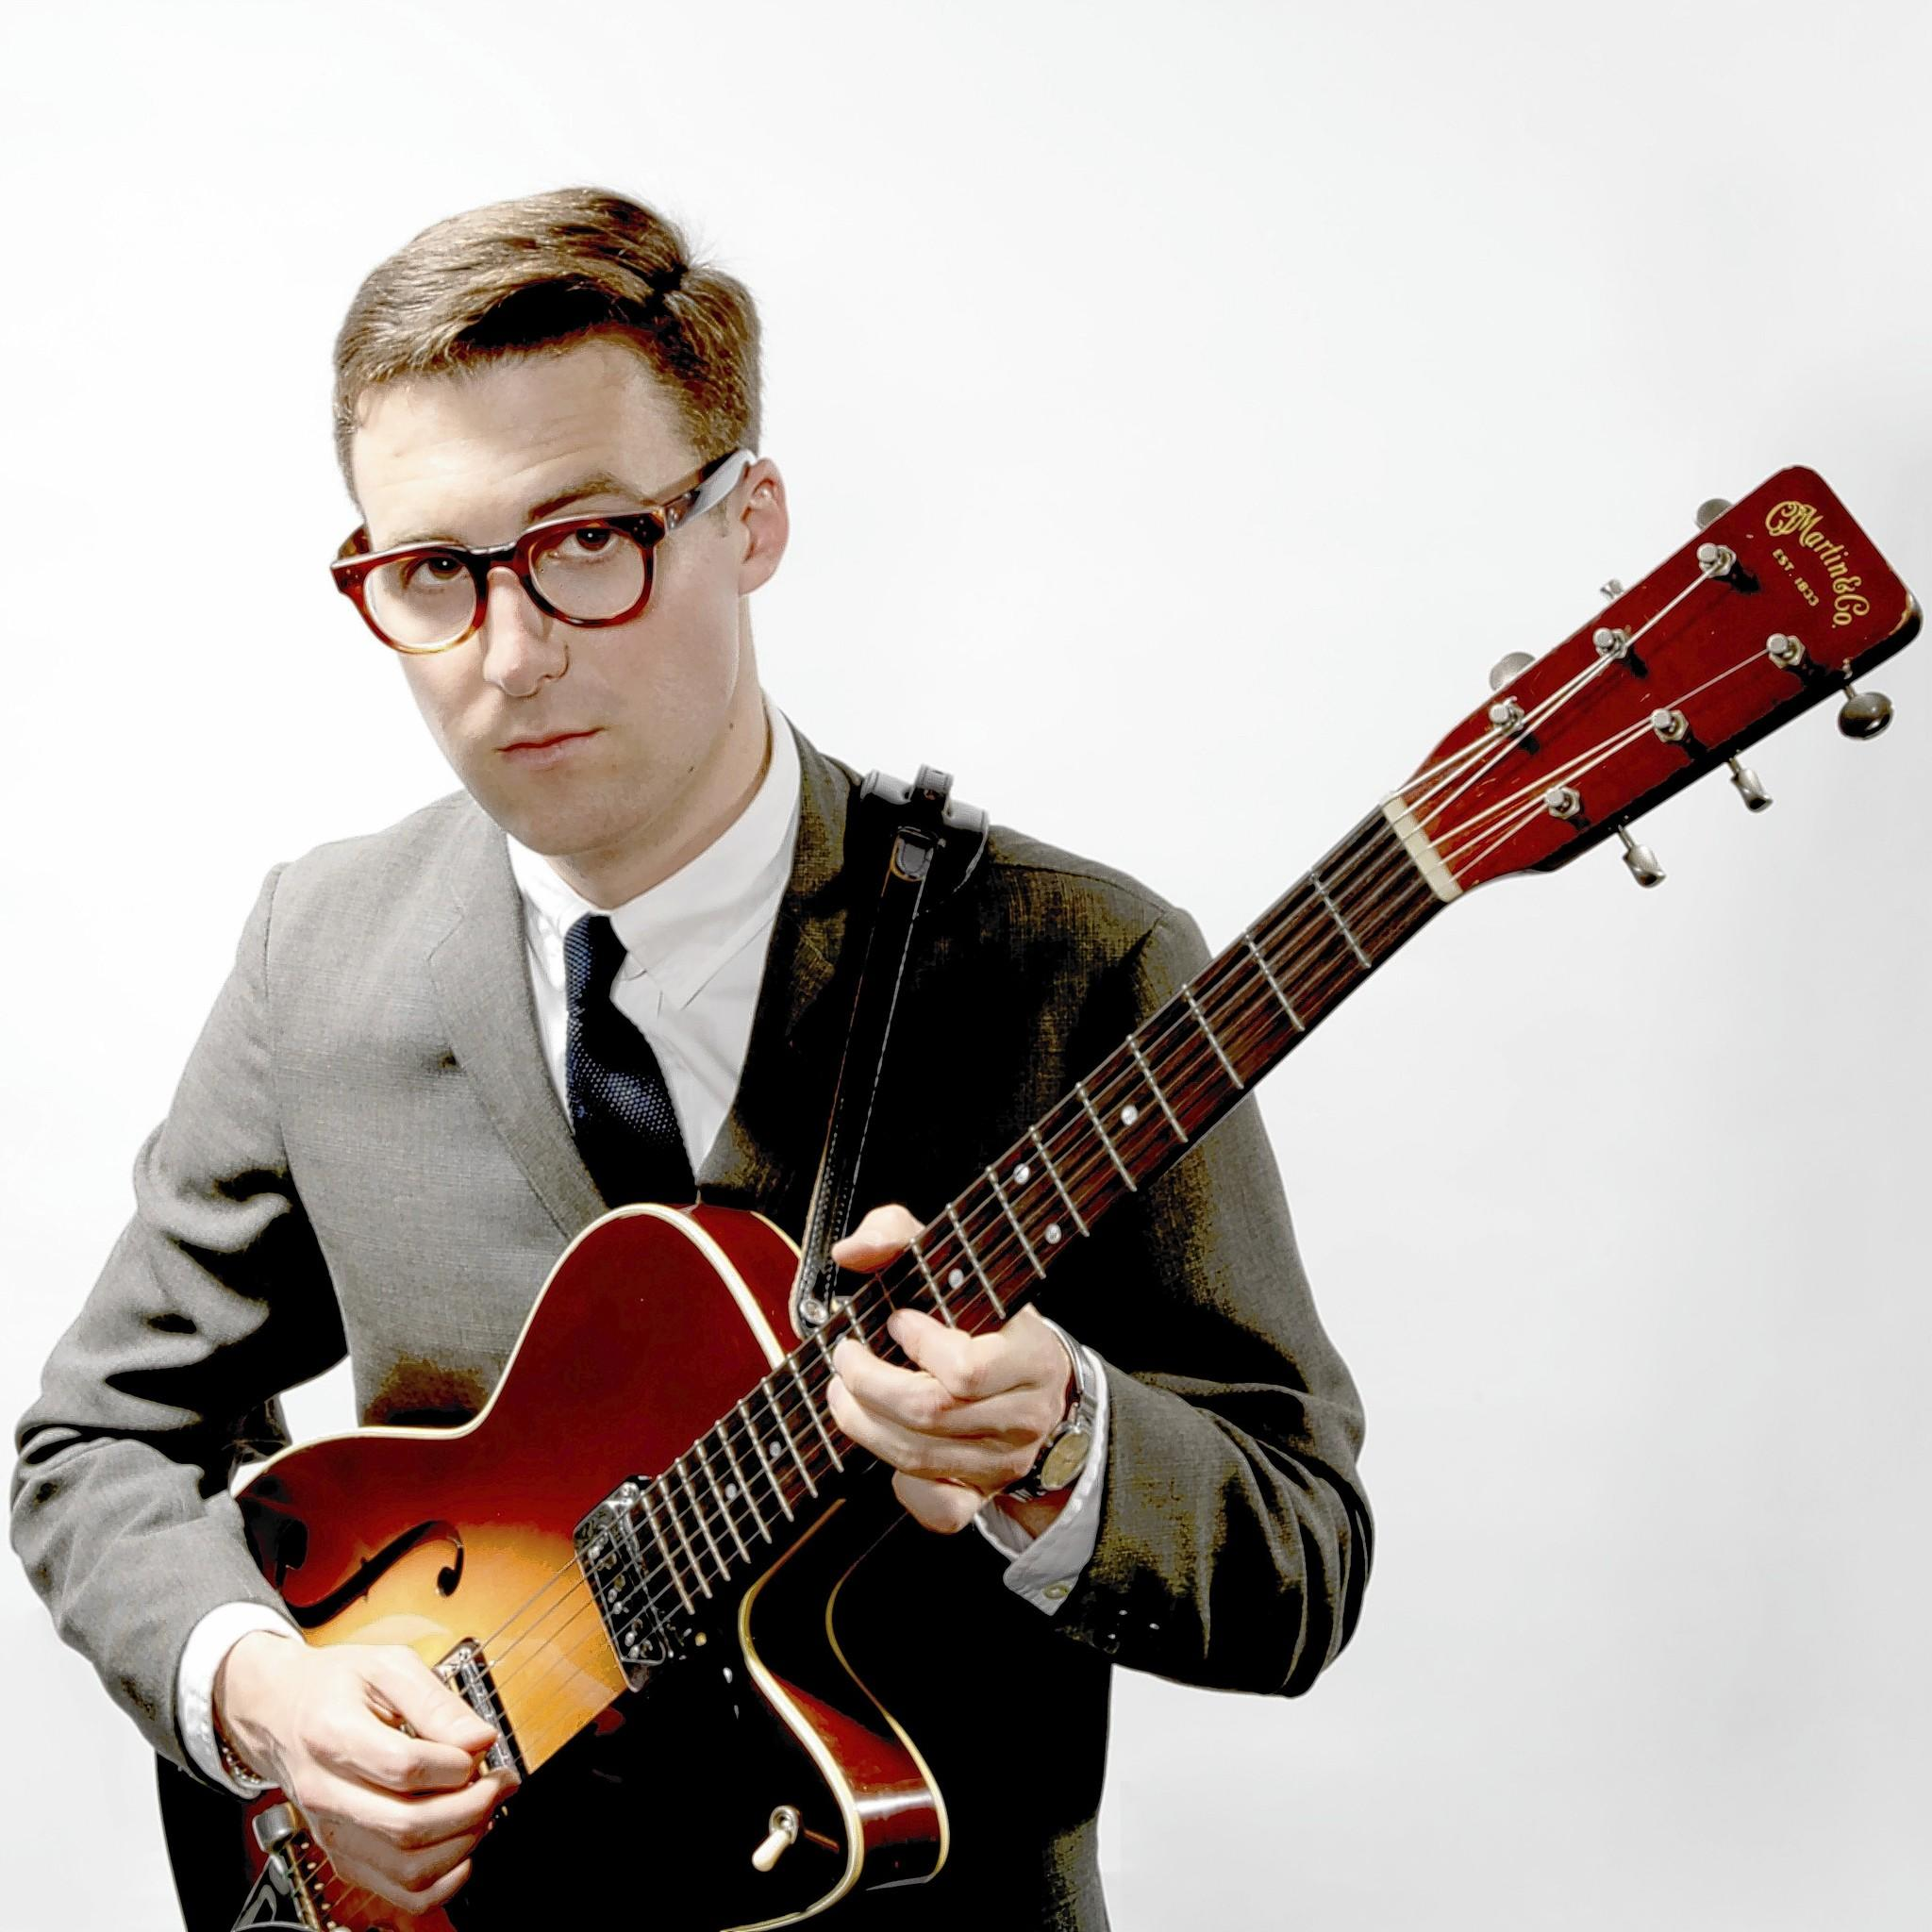 """I have very dark, complex feelings about the way social media operates and the omnipresence of iPhones,"" says California soul singer Nick Waterhouse."